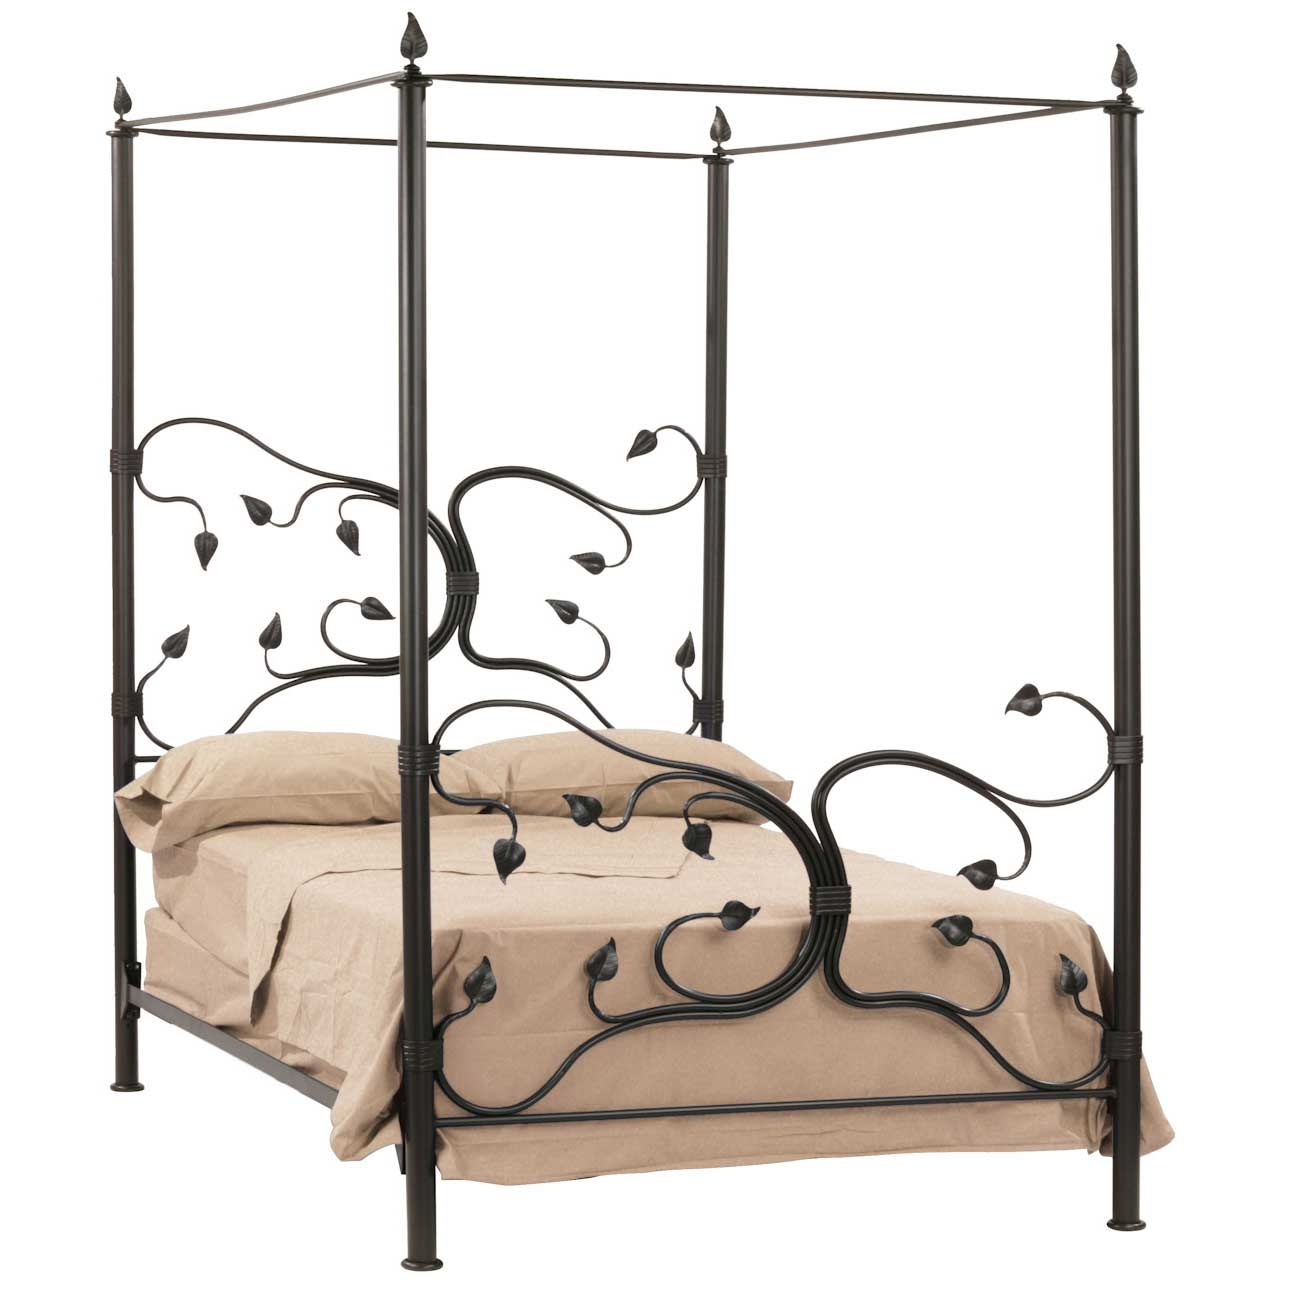 Antique french iron bed - Pictured Here Is The Hand Forged Eden Isle Canopy Bed With Decorative Leaves And Vines